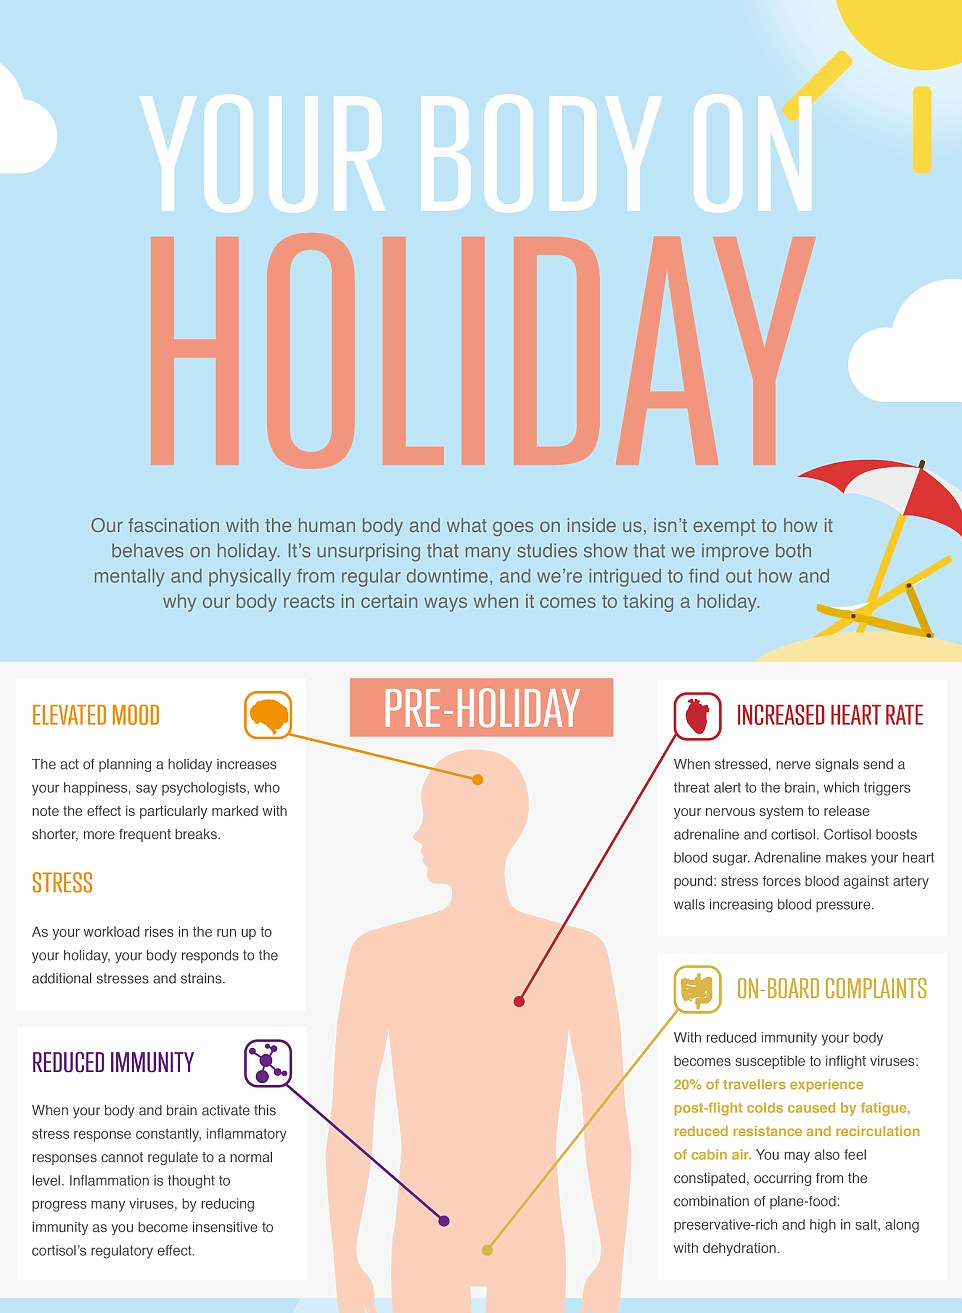 Pre-holiday, you are likely to have an elevated mood because the act of planning a break is proven to increase your happiness